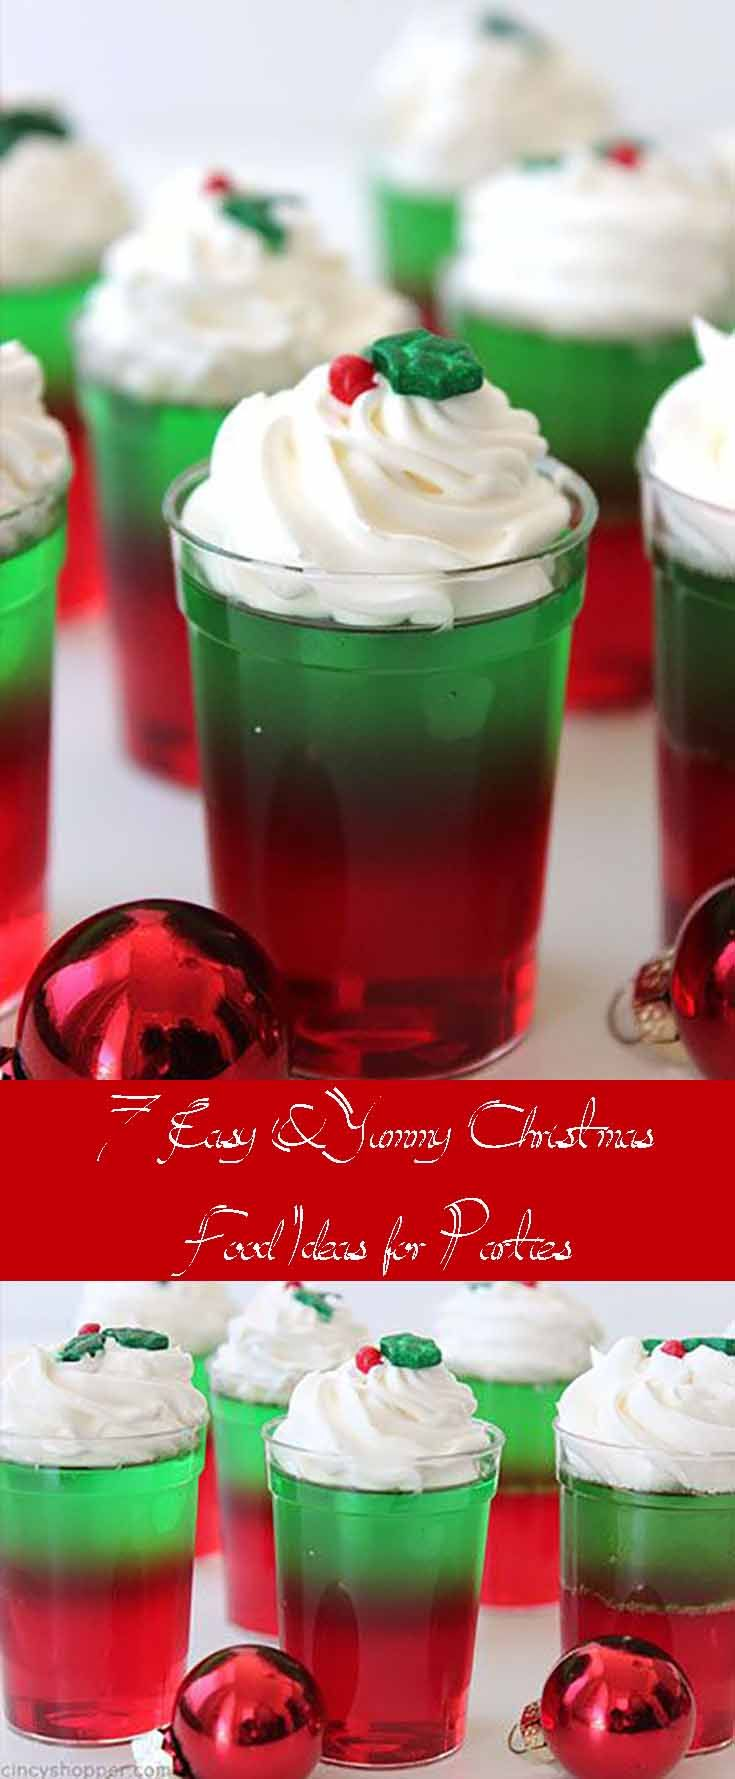 1d1d3fc64a3 When it is Christmas you must be looking for food ideas for the family party